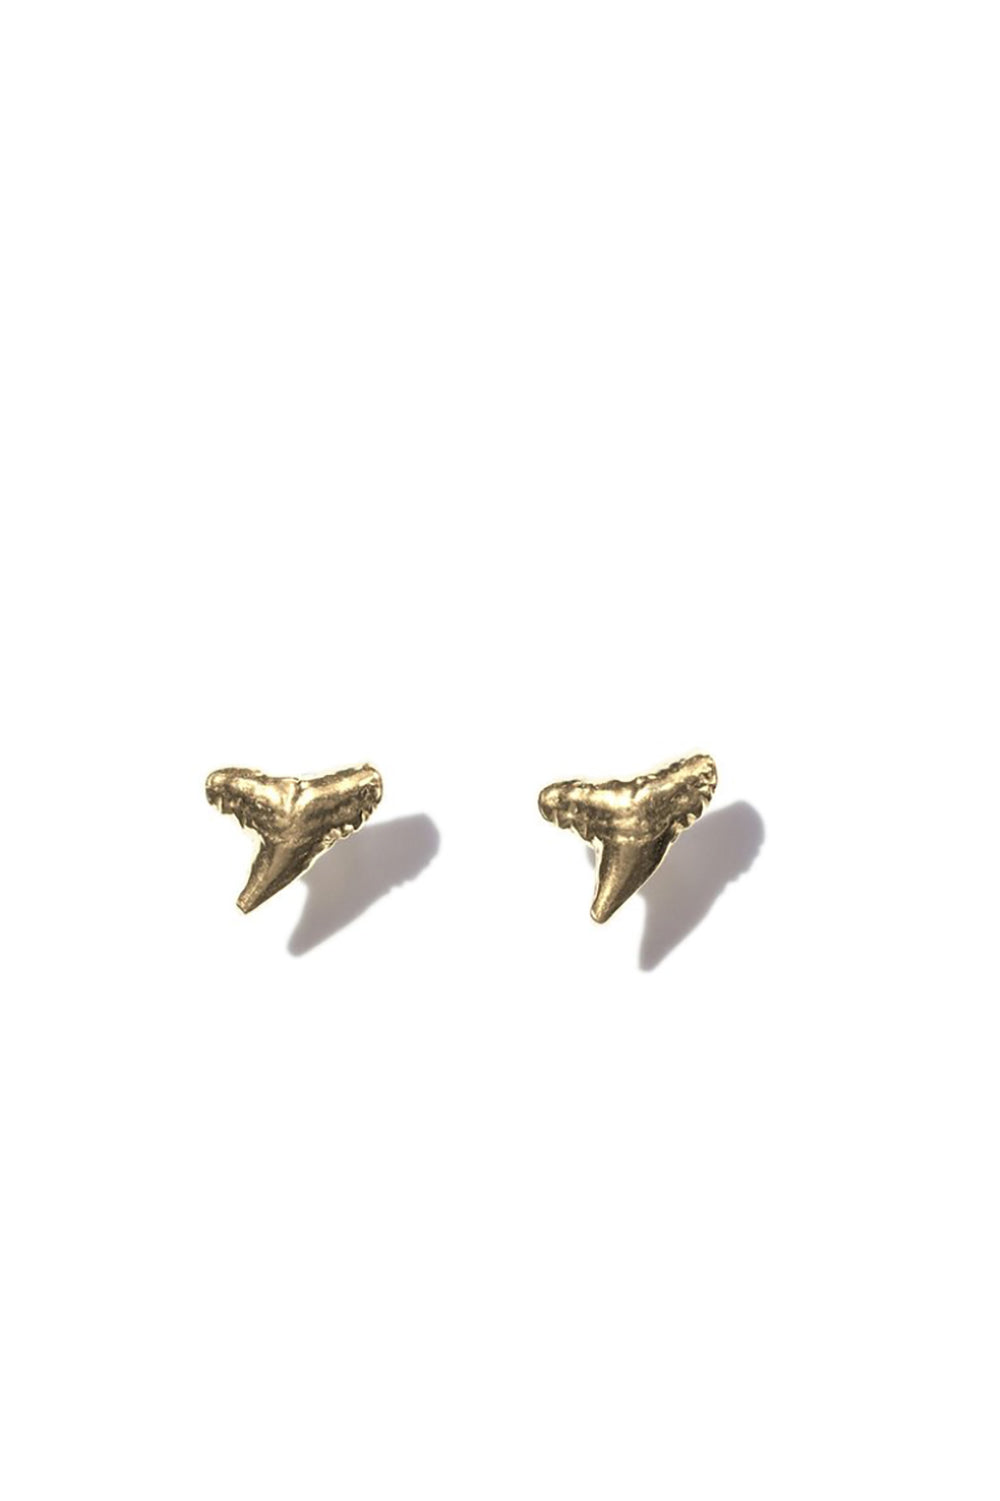 BYCHARI Reef Shark Earrings 14K